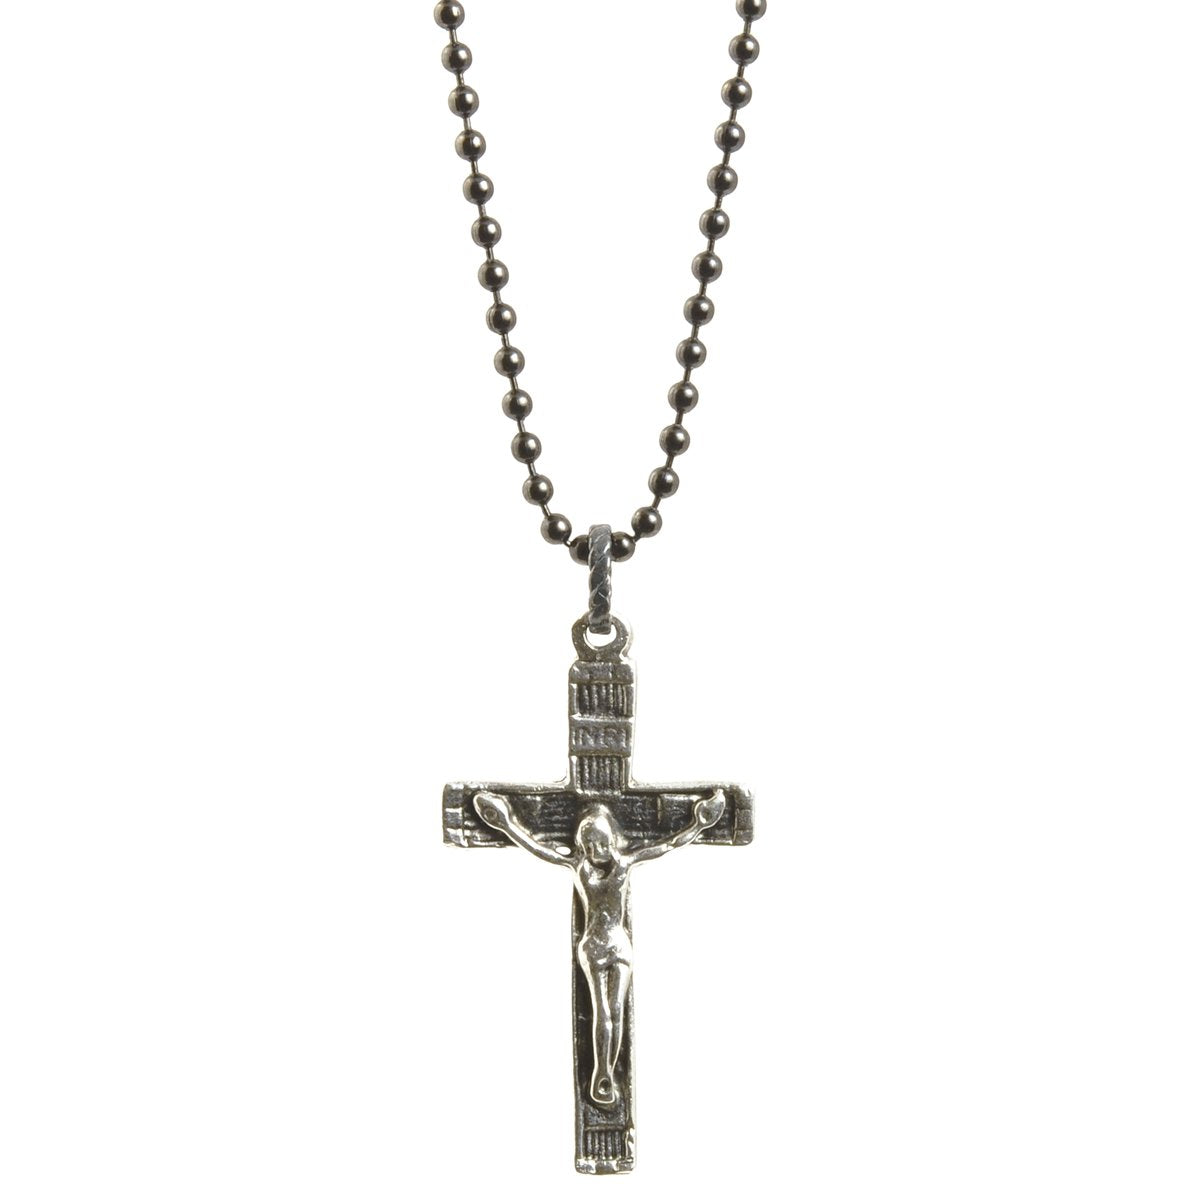 Finished Jewelry-Simple-Catholic Crucifix Cross-Antique Silver-Black Oxide